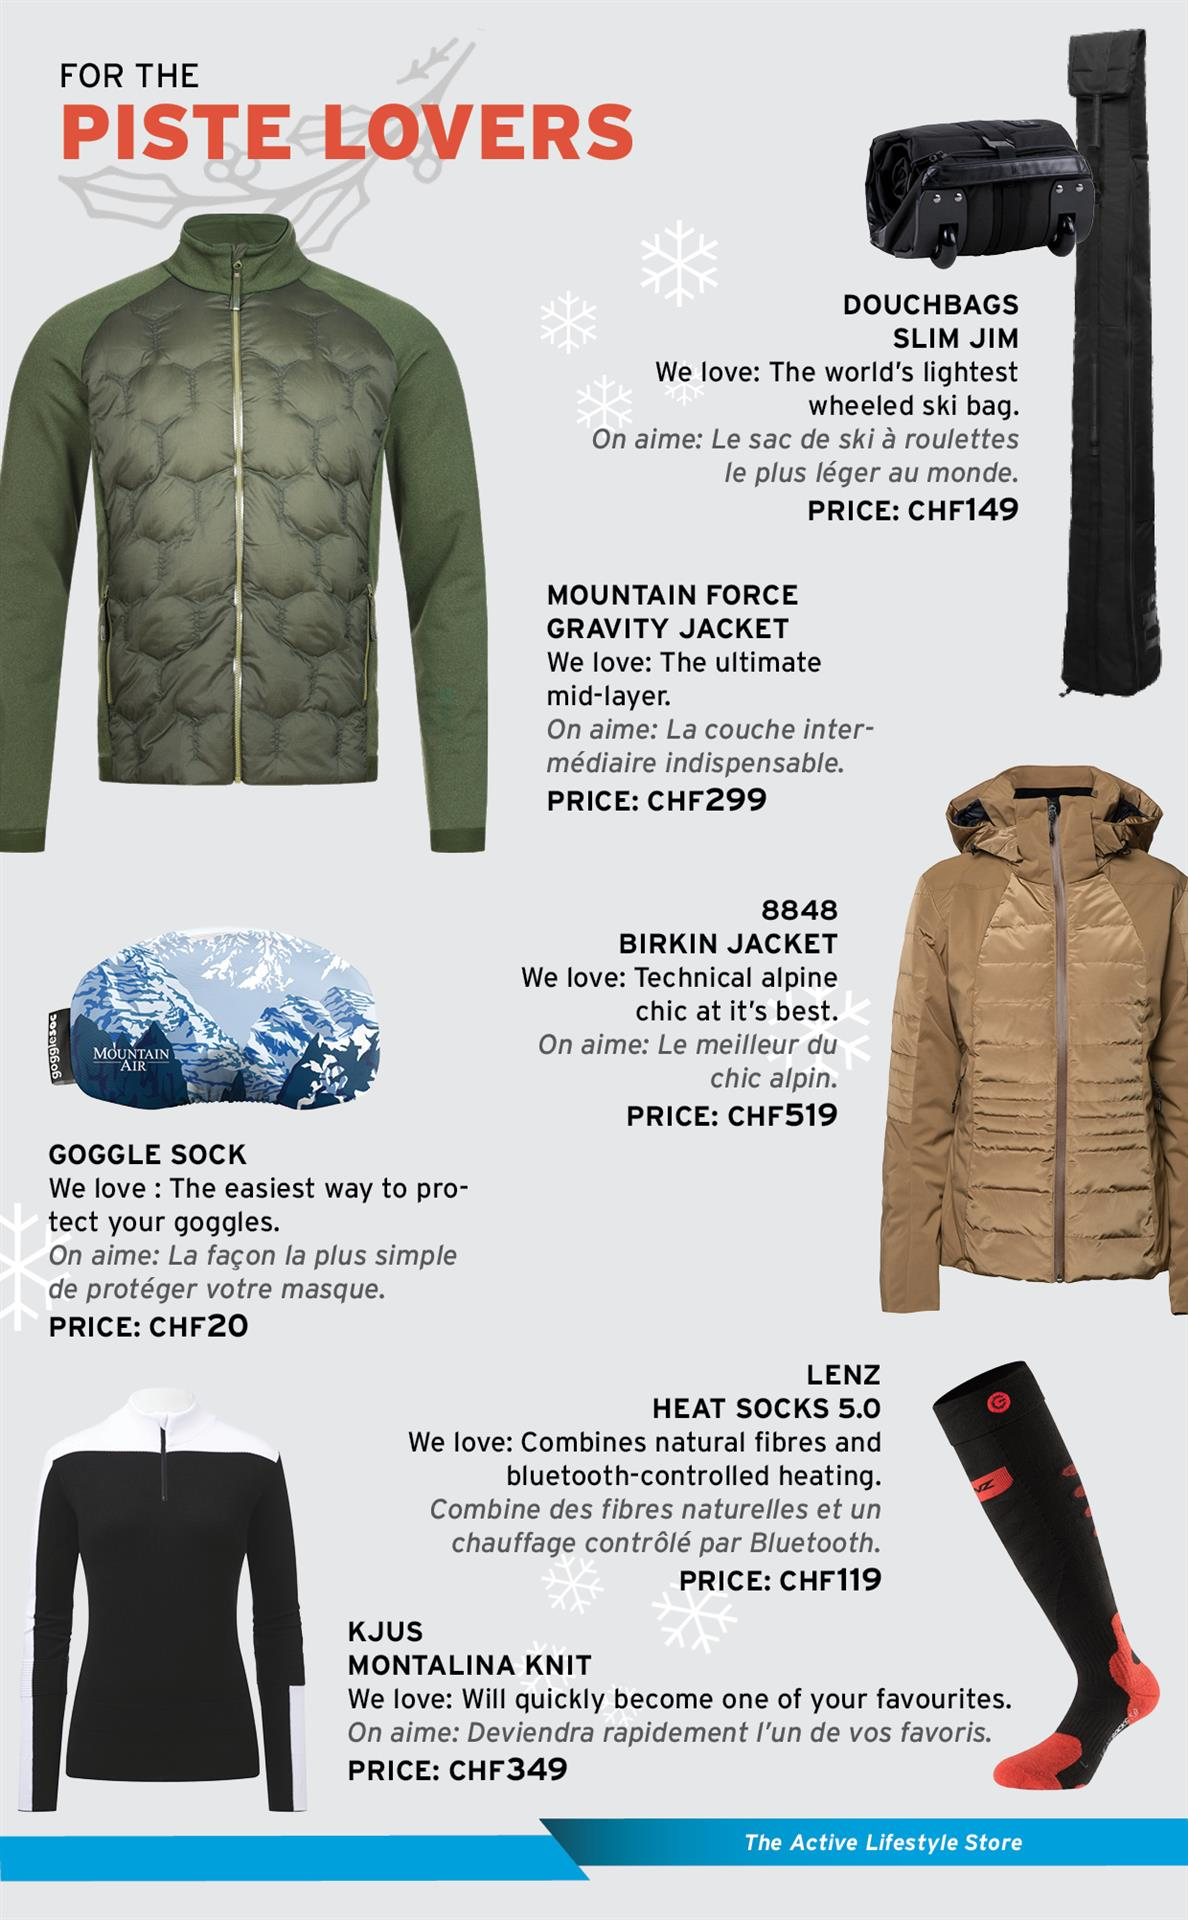 Gifts for the piste lovers